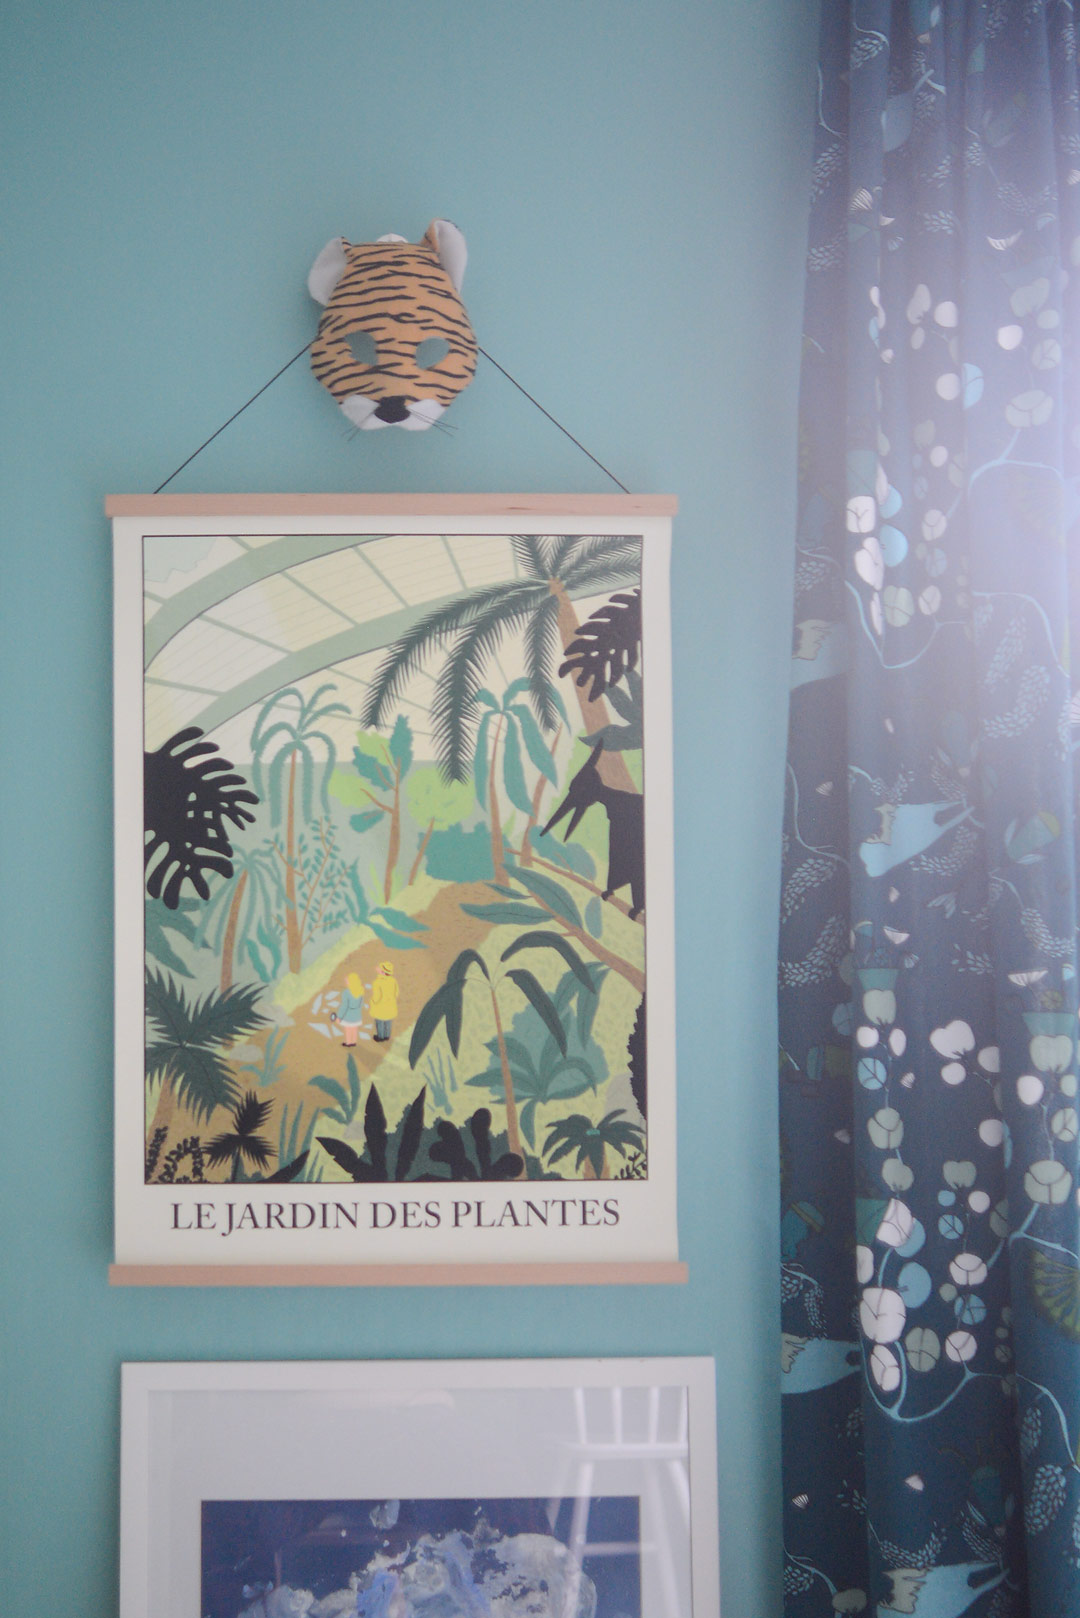 Le Jardin des Plantes poster by Bailly Simon